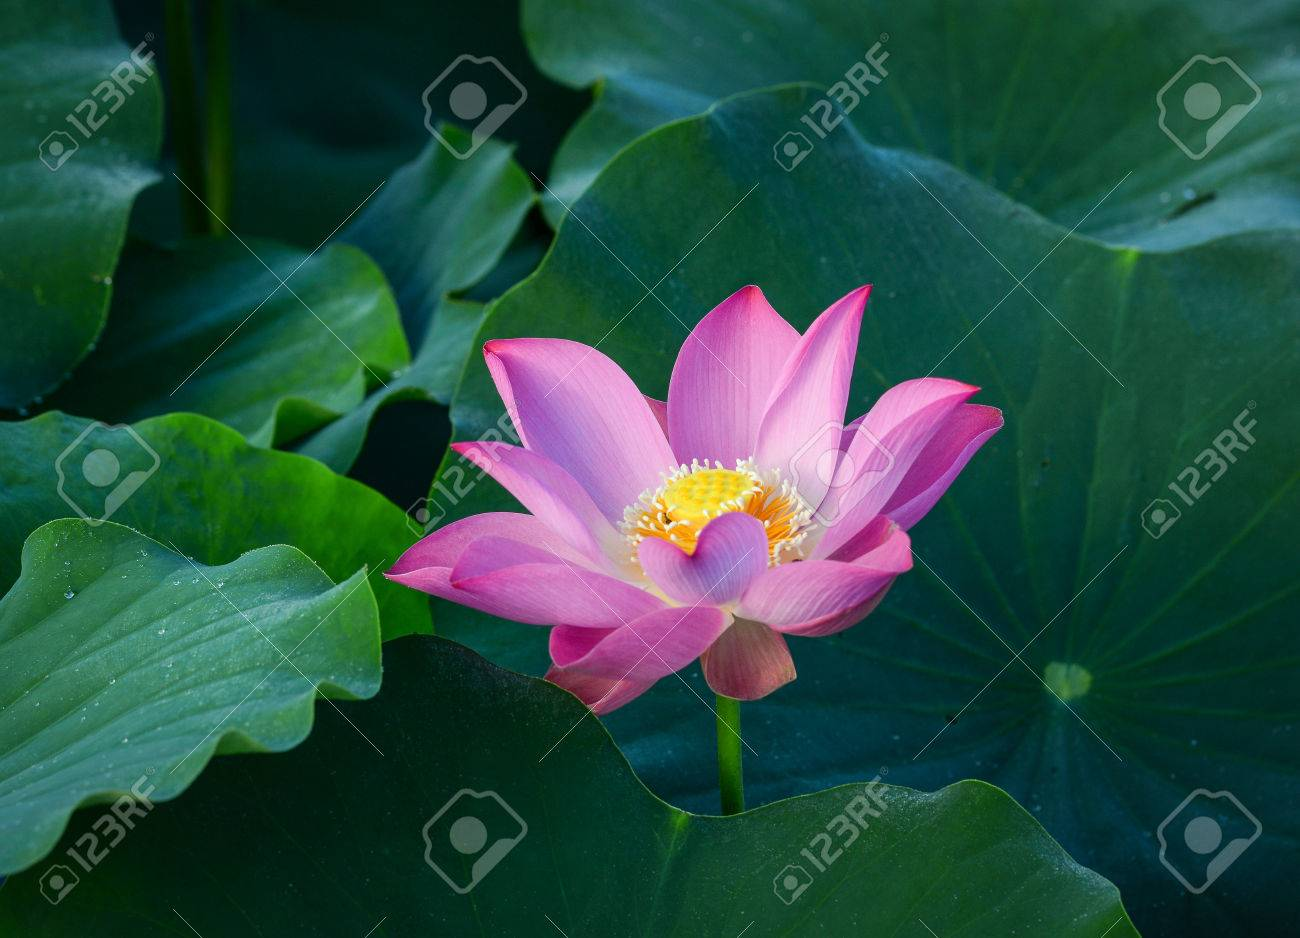 Close Up Of Lotus Flower In Buddhist Symbolism The Lotus